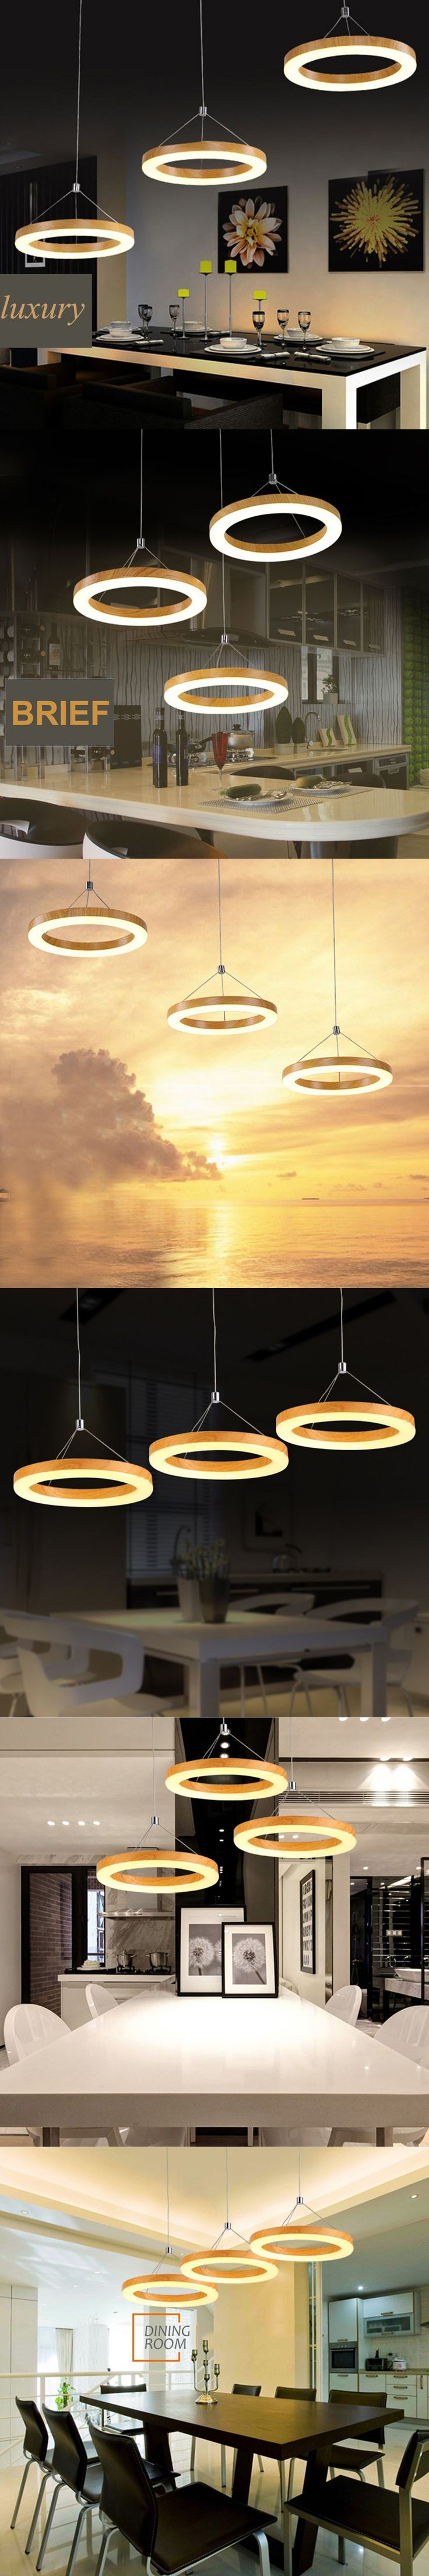 Nordic Suspension Luminaire Modern Minimalist Gold Lighting Metal Lampshade Round Hanging Lamp Tiffany Pendant Light Home Decor